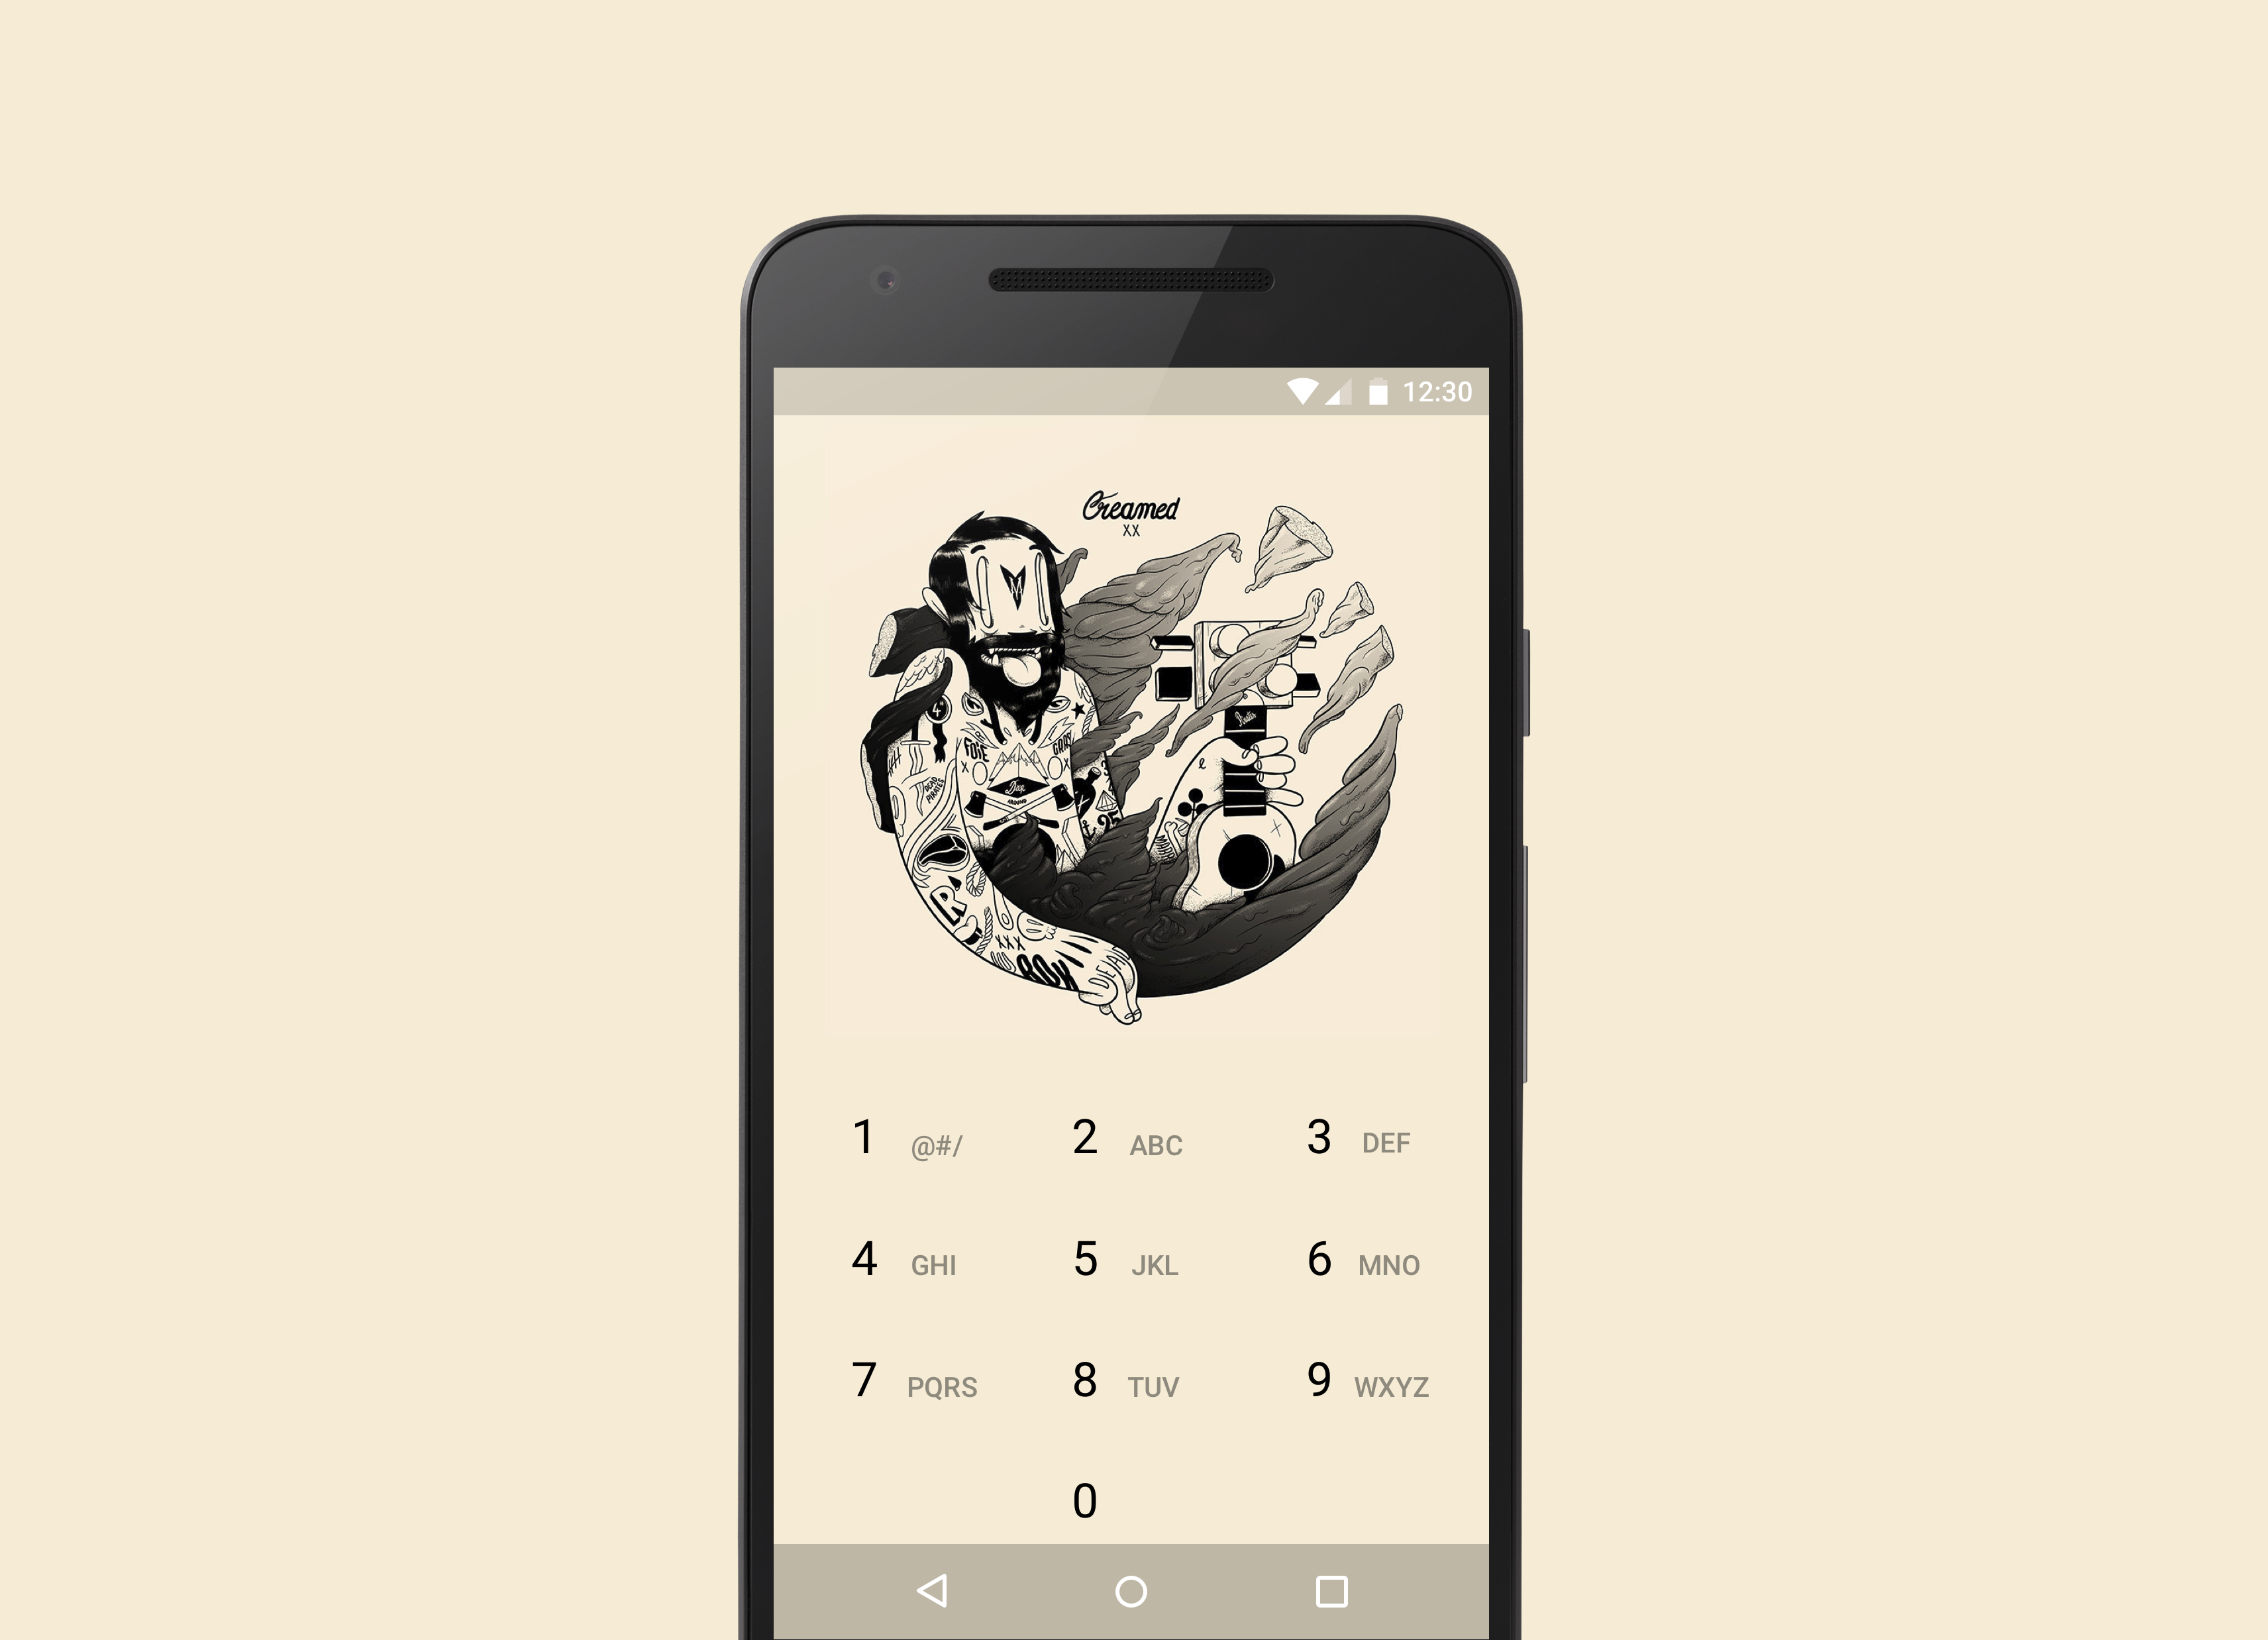 Keeping it clean with Peek Launcher and McBess androidthemes 3424x2476